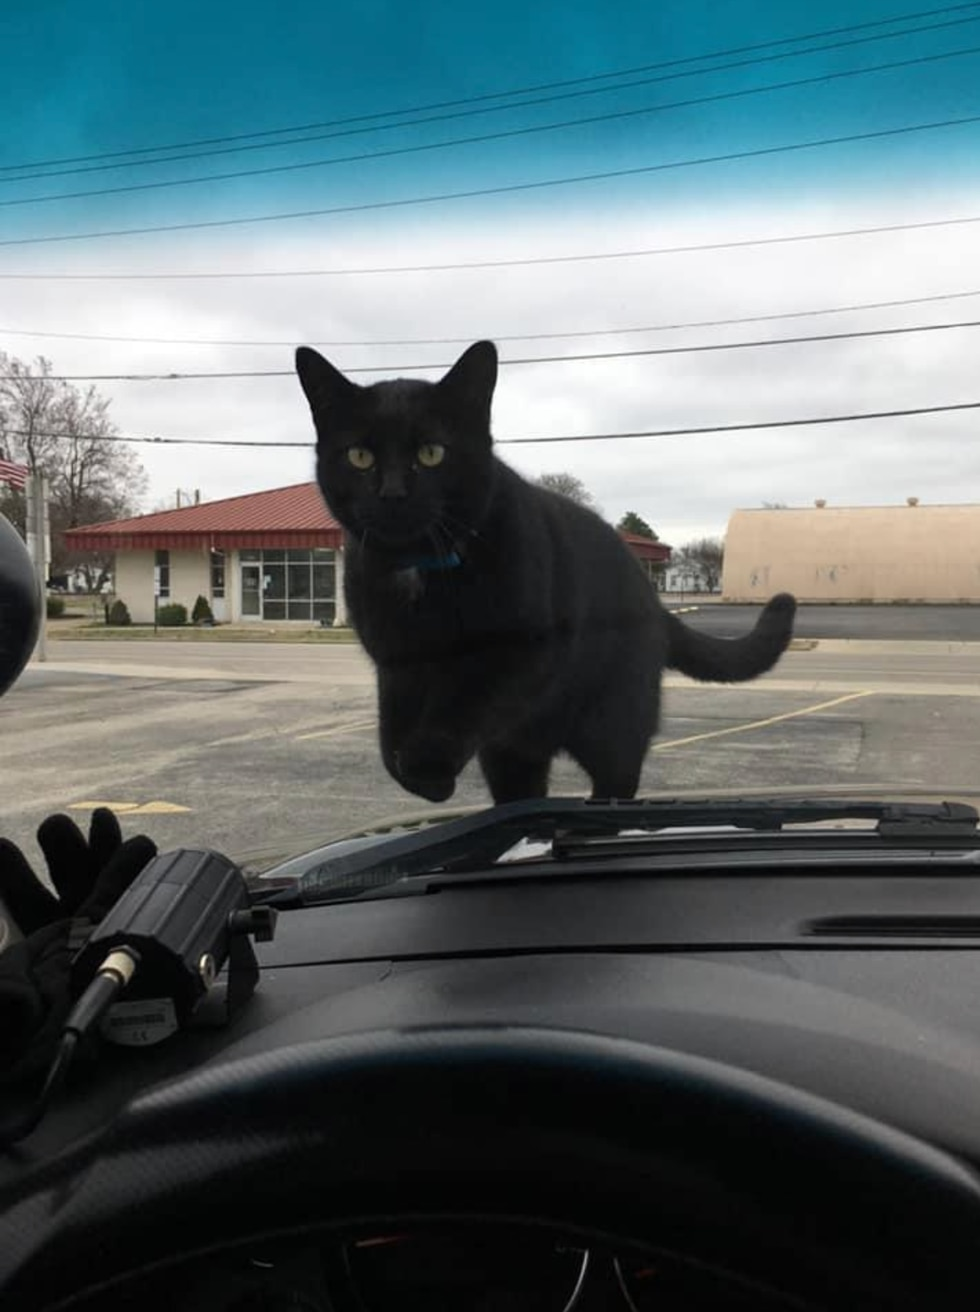 Lt. Roach, the Malden Police Department's cat, has returned home safely after going missing for...